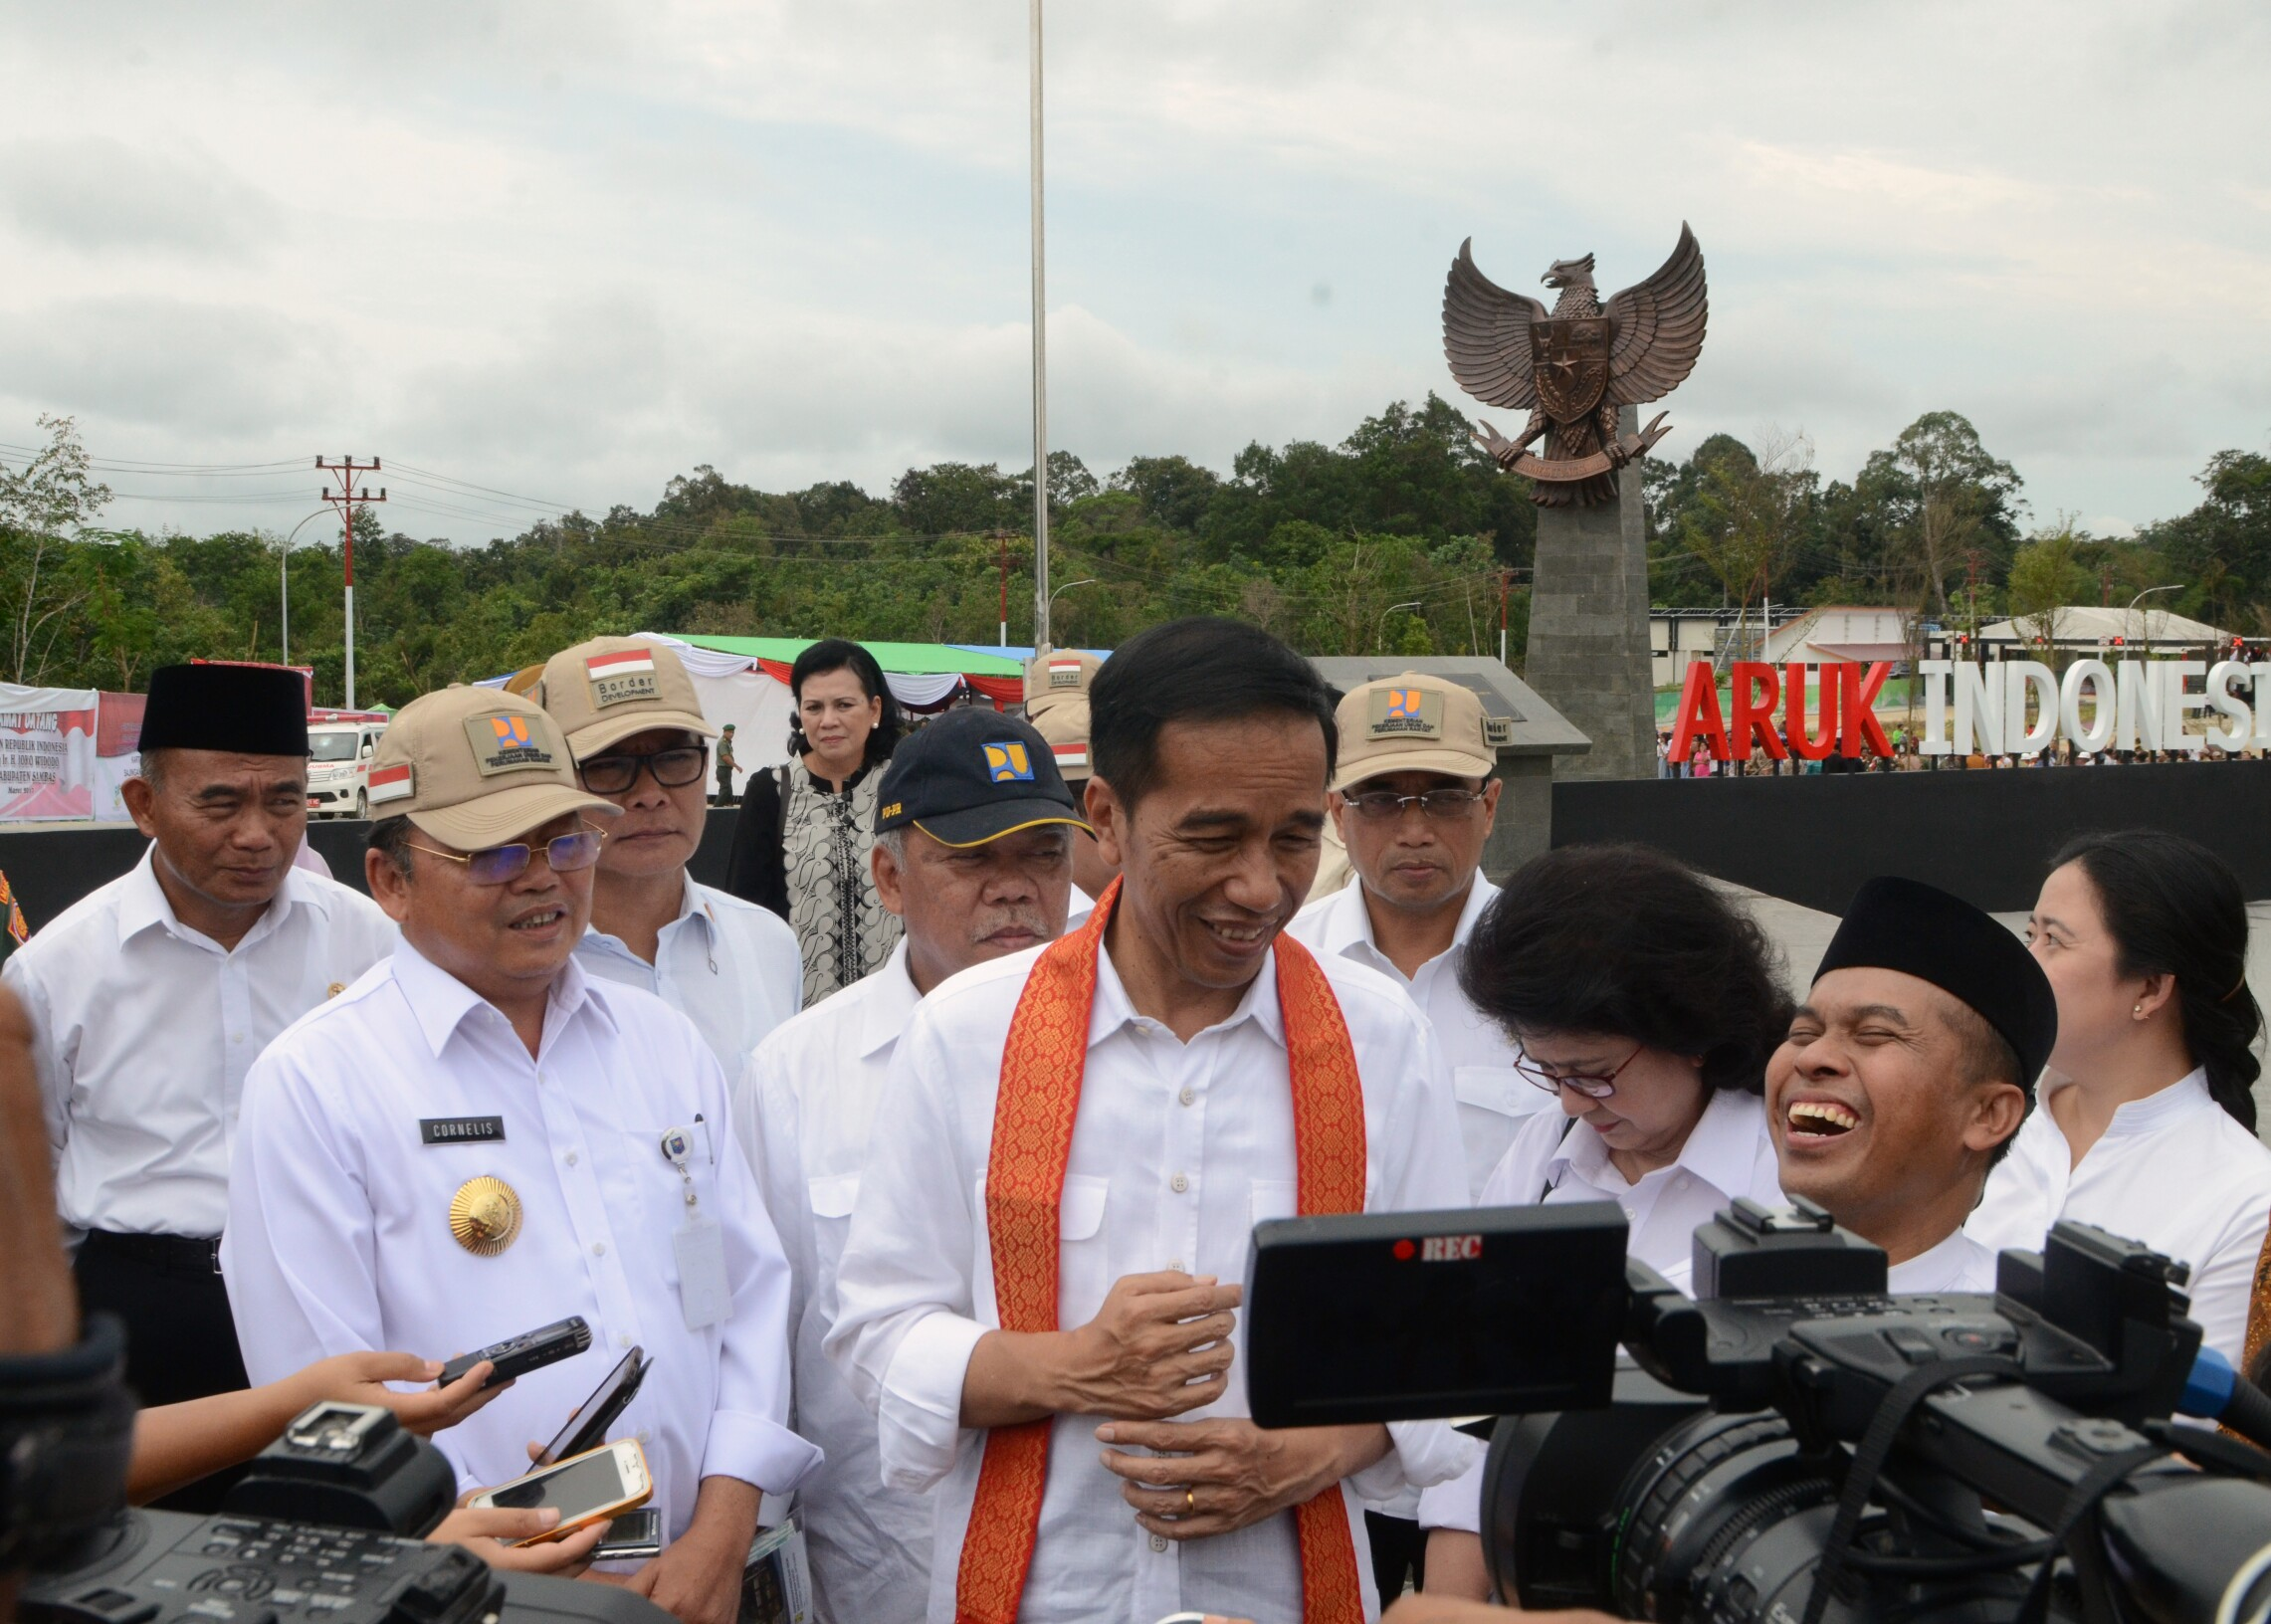 President Jokowi responds to the journalists' questions at PLBN (Integrated Cross-Border Post) Aruk, West Kalimantan (17/3) (Photo: PR/Deni)